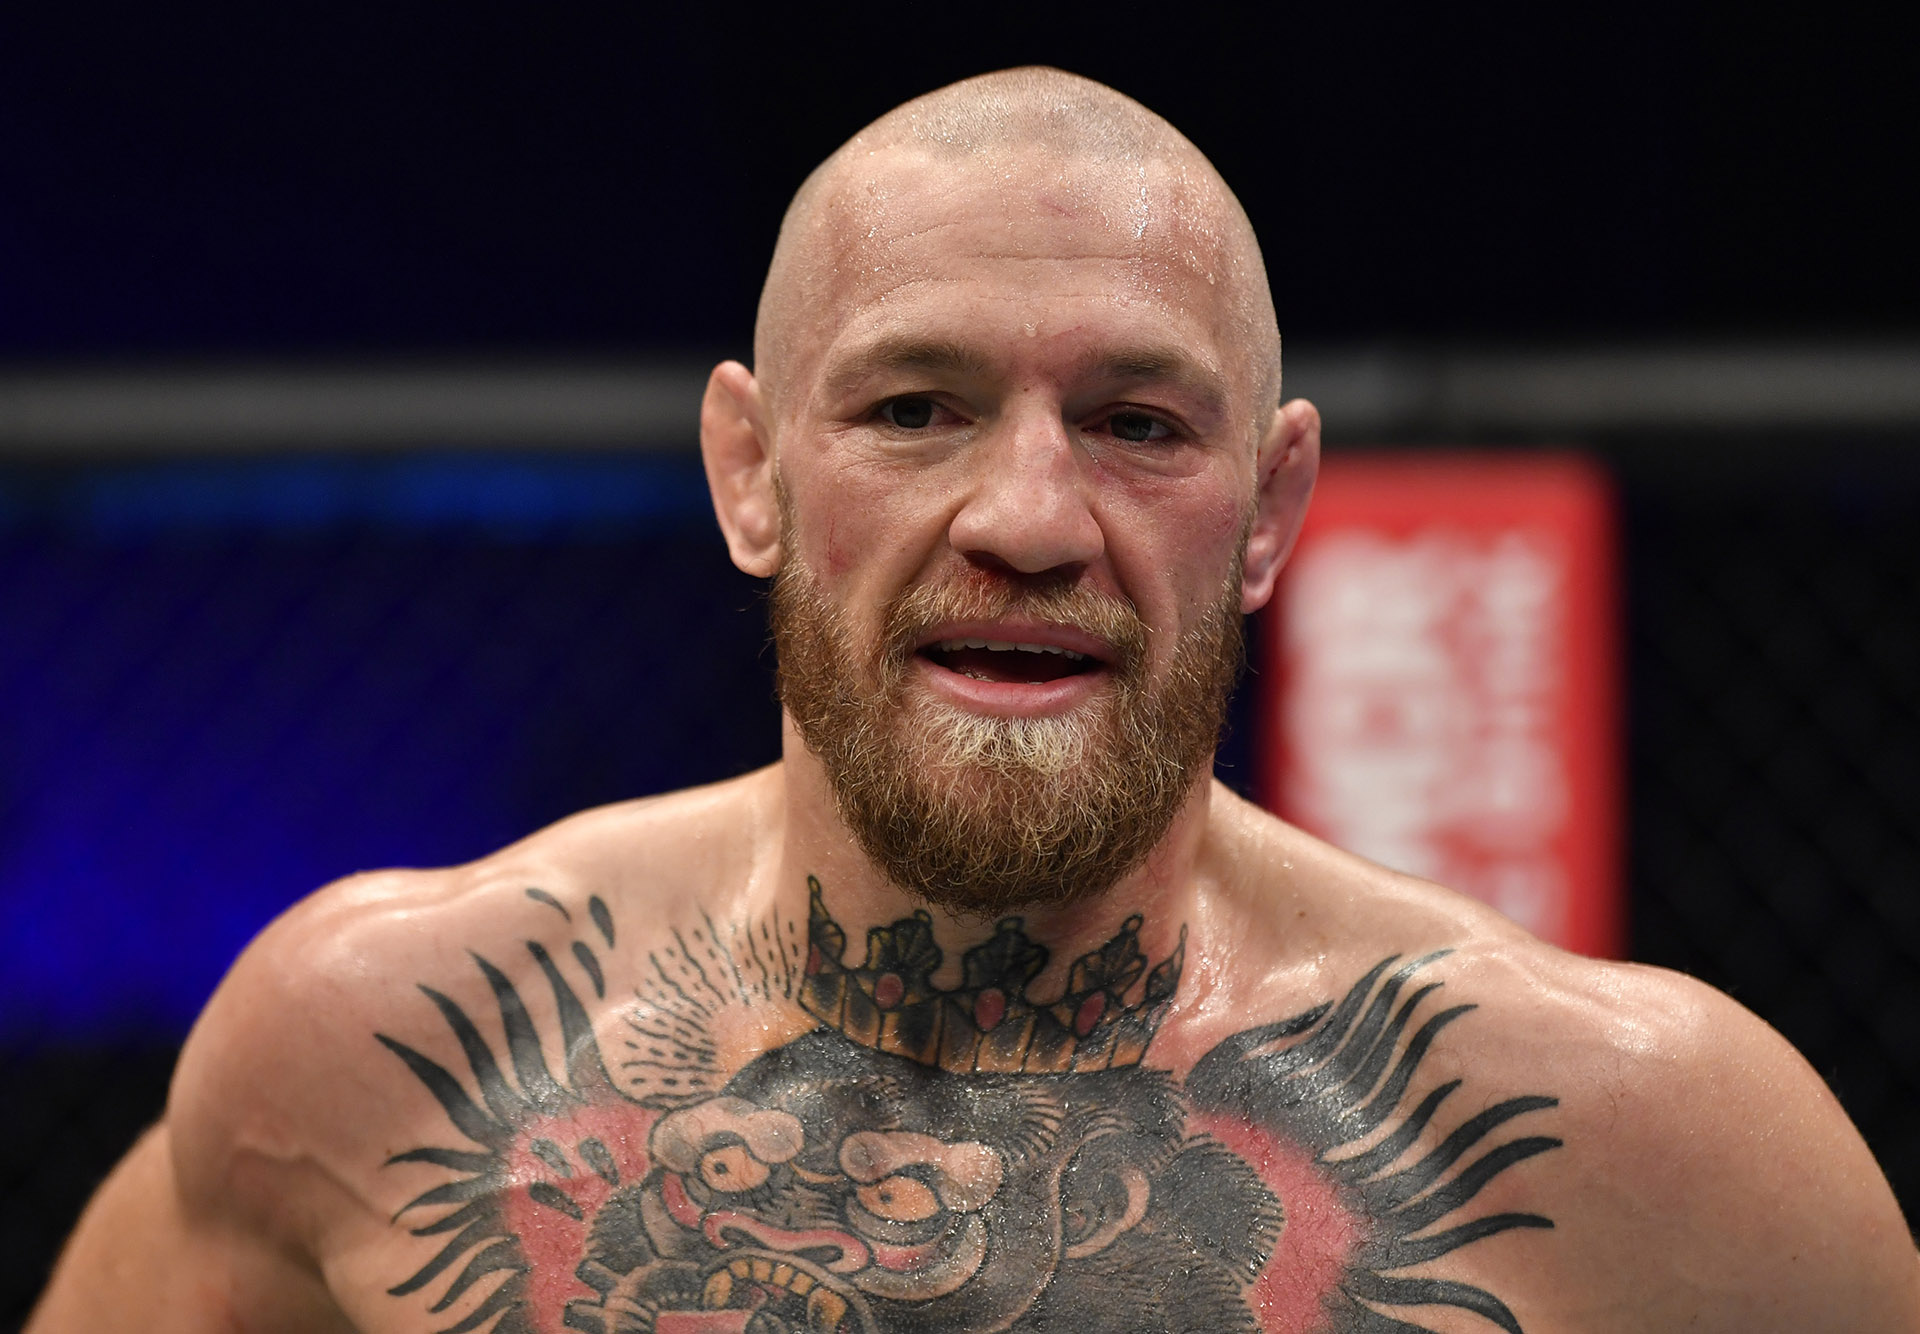 Conor McGregor of Ireland reacts after his TKO loss to Dustin Poirier in a lightweight fight during the UFC 257 event inside Etihad Arena on UFC Fight Island on January 23, 2021 in Abu Dhabi, United Arab Emirates. (Photo by Jeff Bottari/Zuffa LLC)